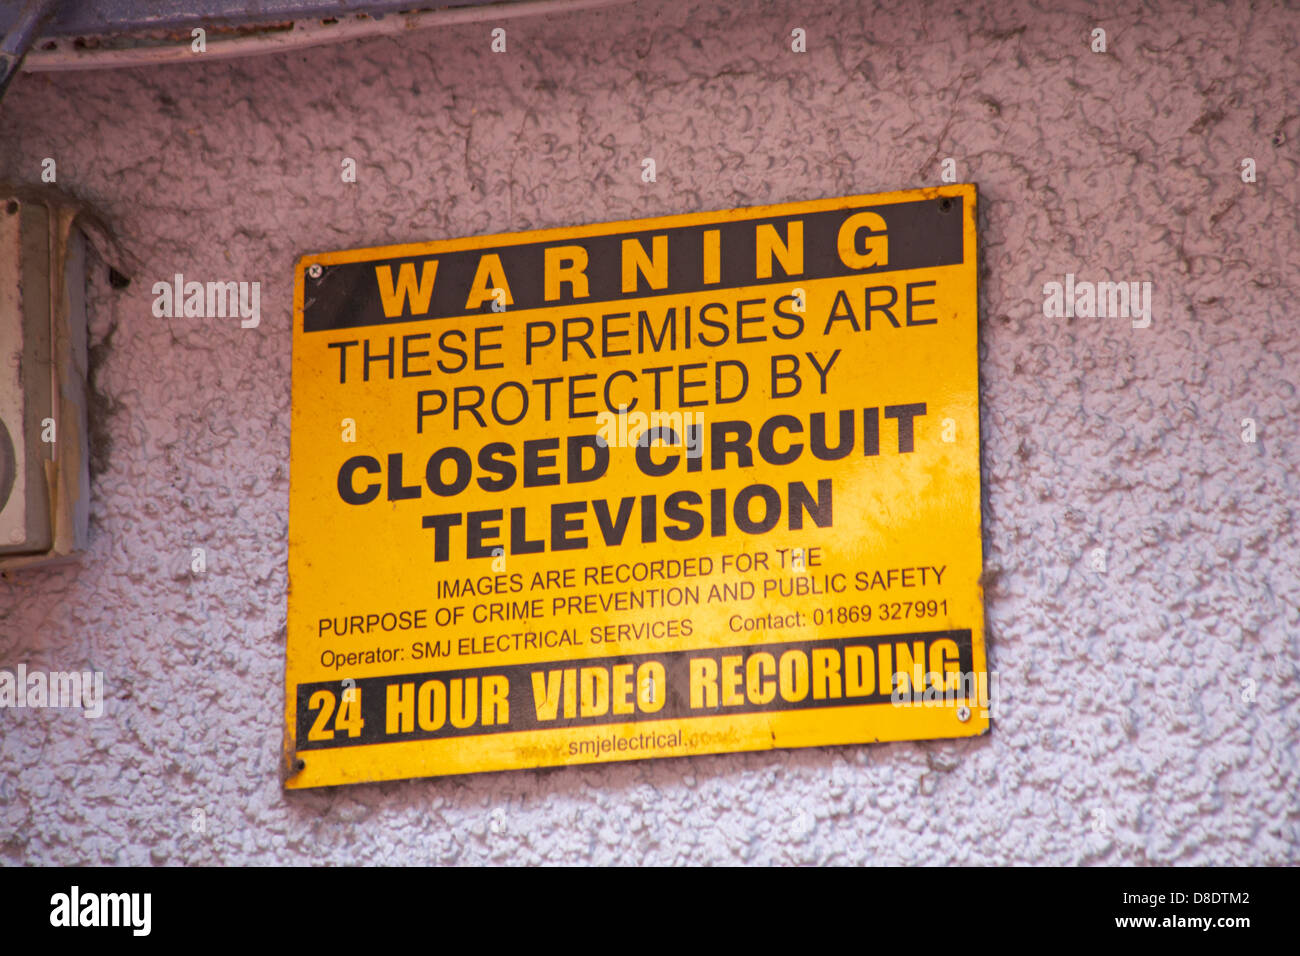 warning these premises are protected by closed circuit television sign on wall at Oxford in May - Stock Image